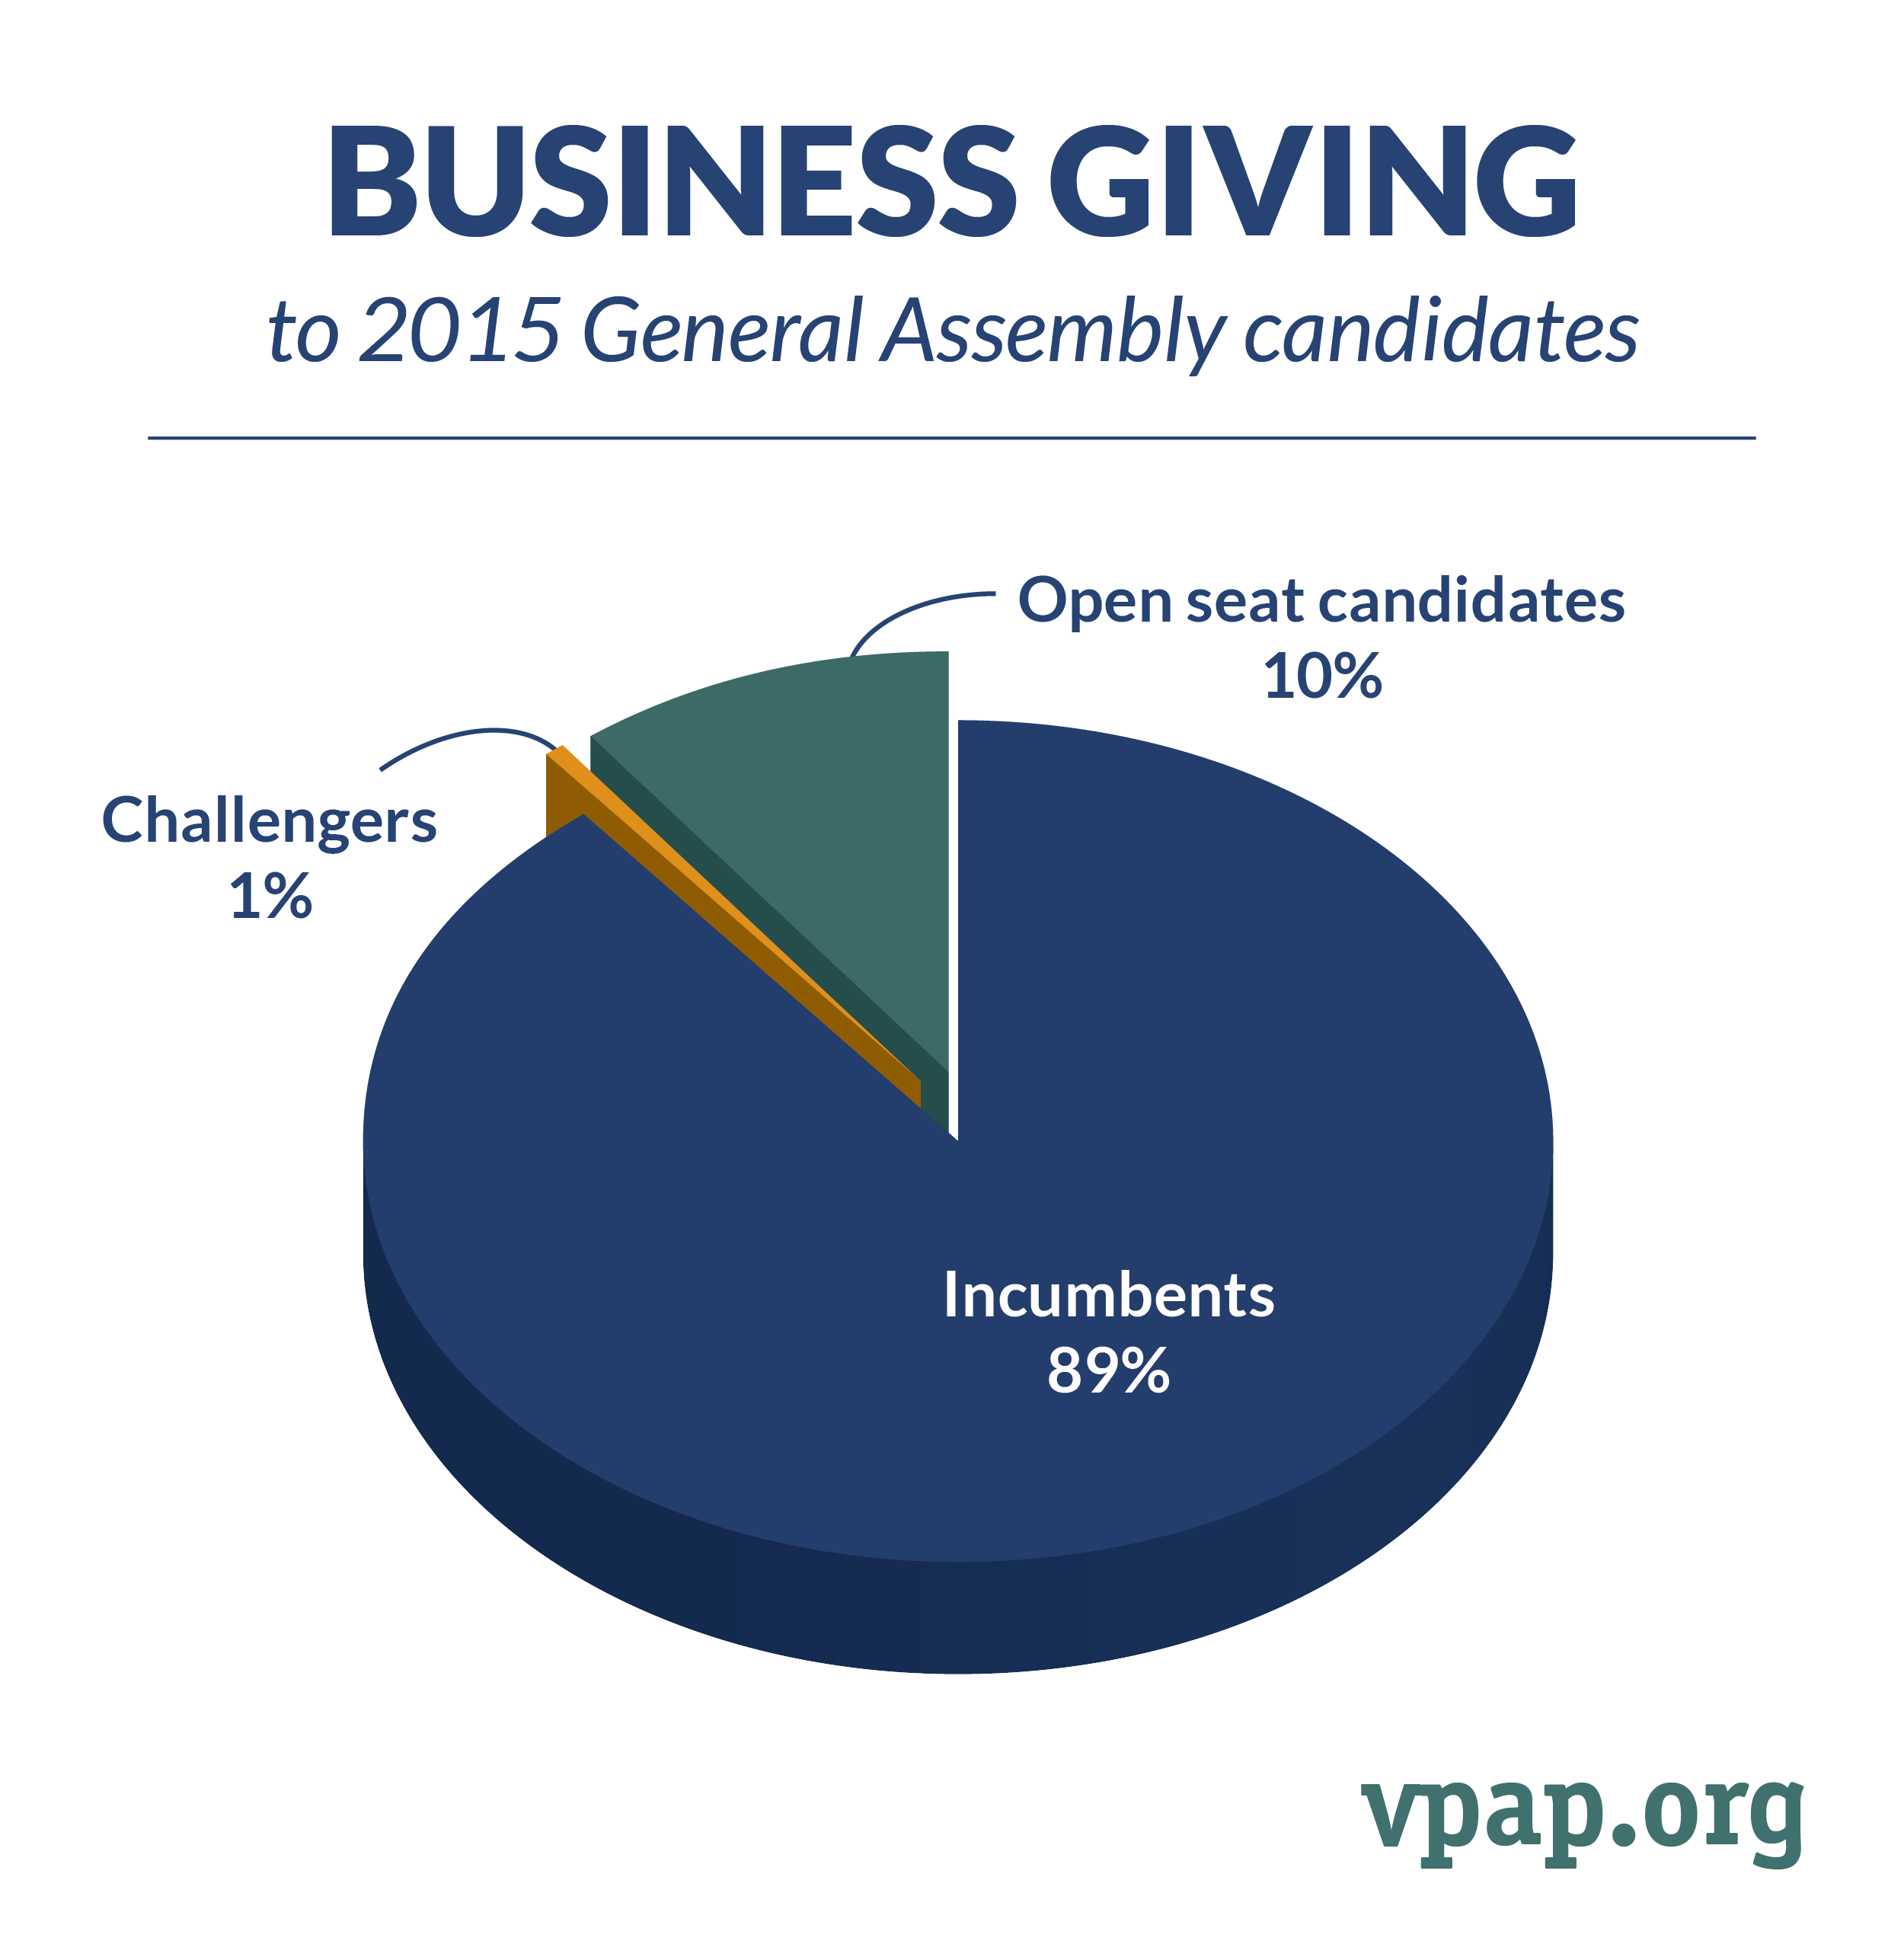 Business Giving to 2015 General Assembly Candidates